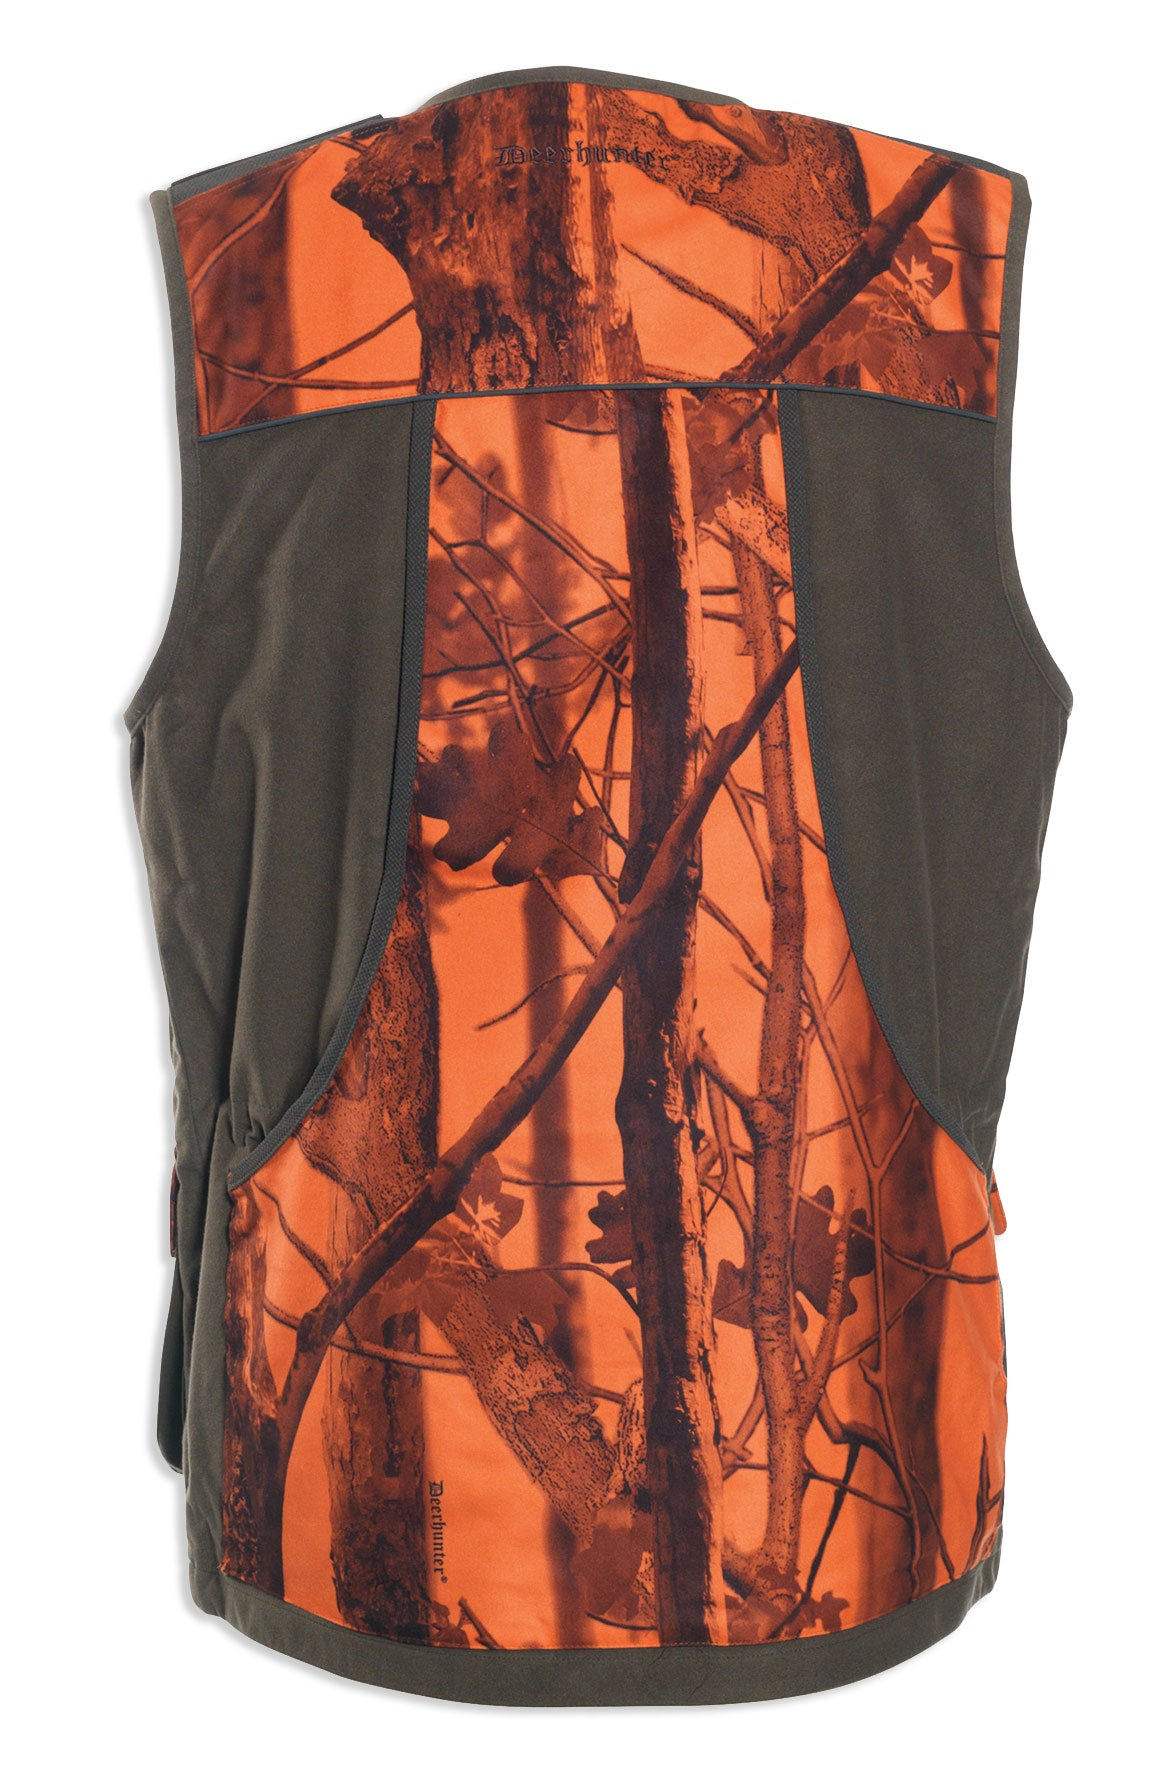 rear view Deerhunter Cumberland PRO Waistcoat in innovation blaze orange for hunters